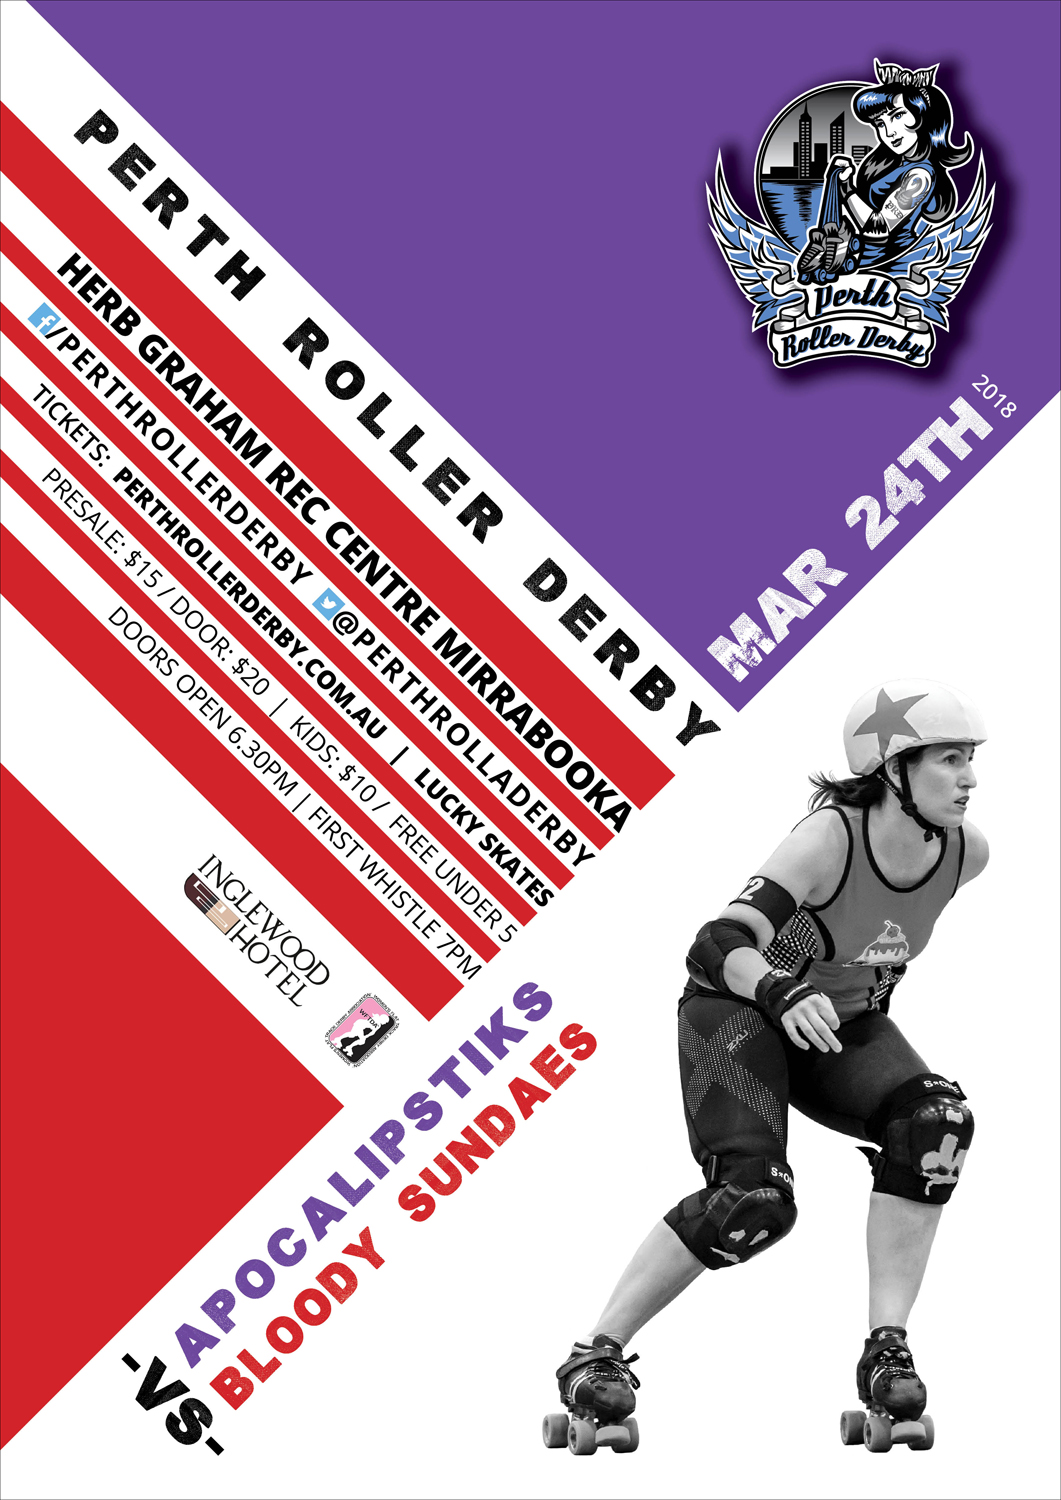 Perth Roller Derby 2018 Game 1